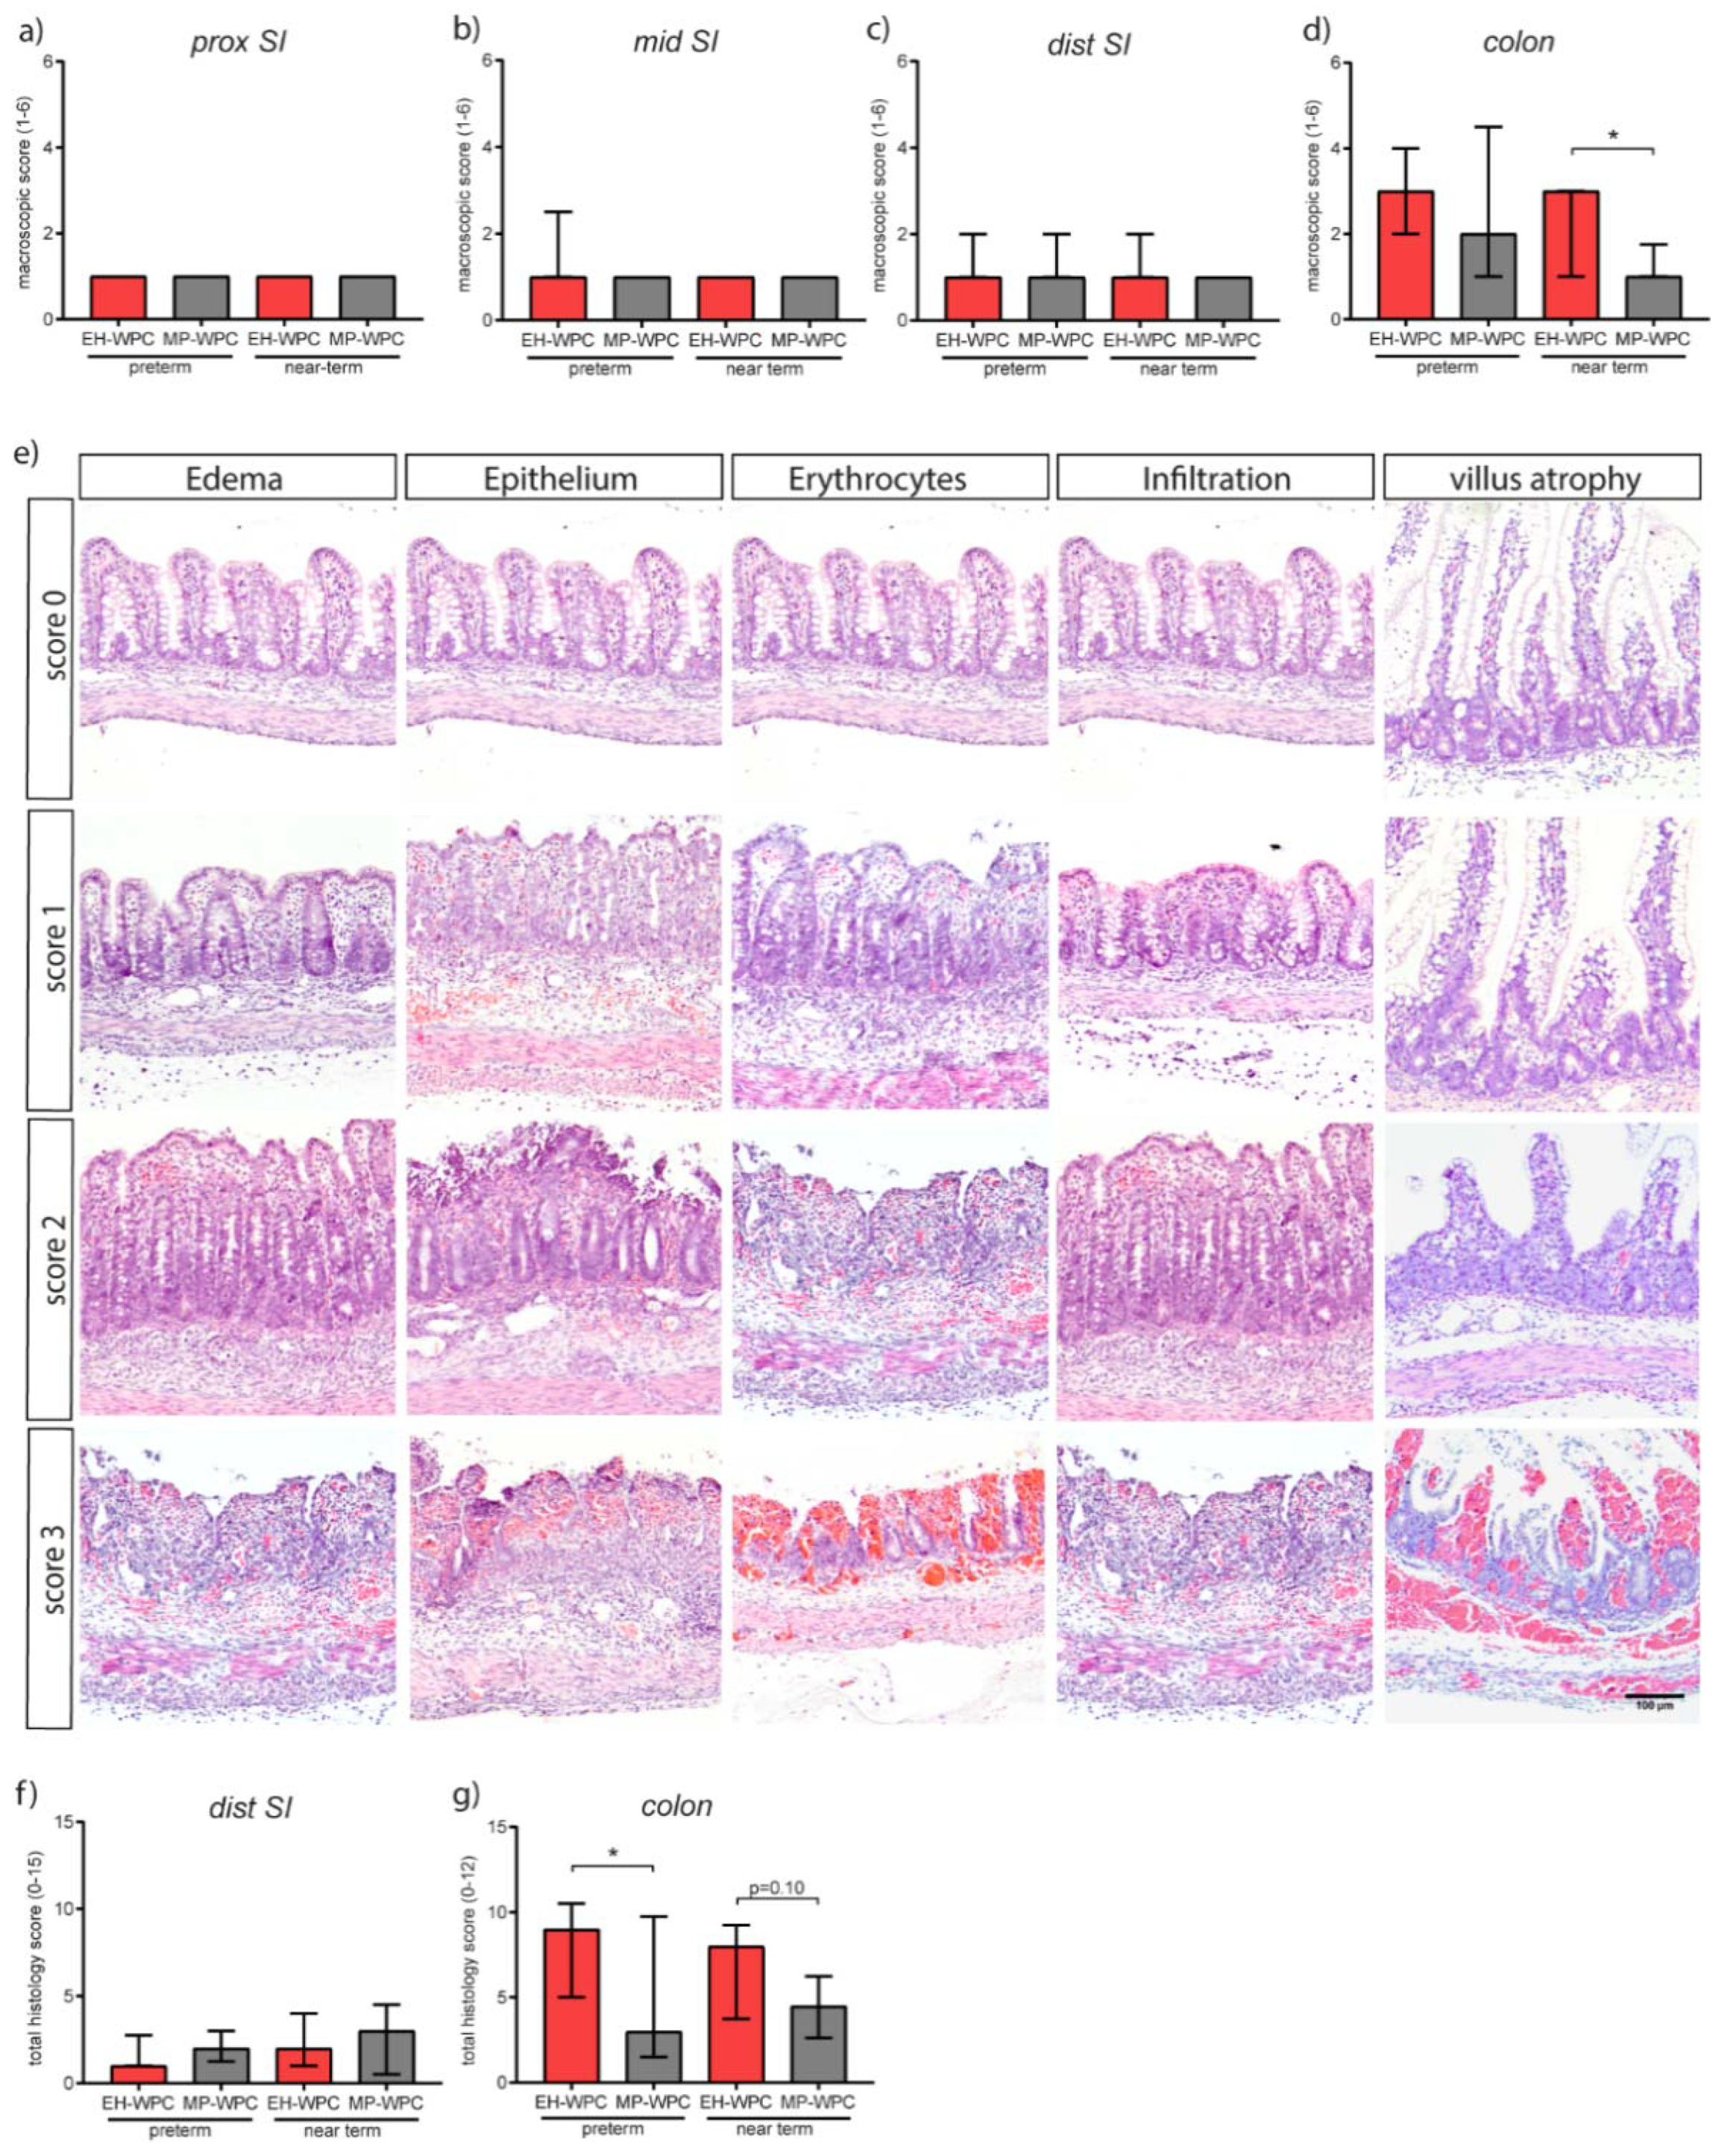 Nutrients Free Full Text Beneficial Effect Of Mildly Pasteurized Whey Protein On Intestinal Integrity And Innate Defense In Preterm And Near Term Piglets Html